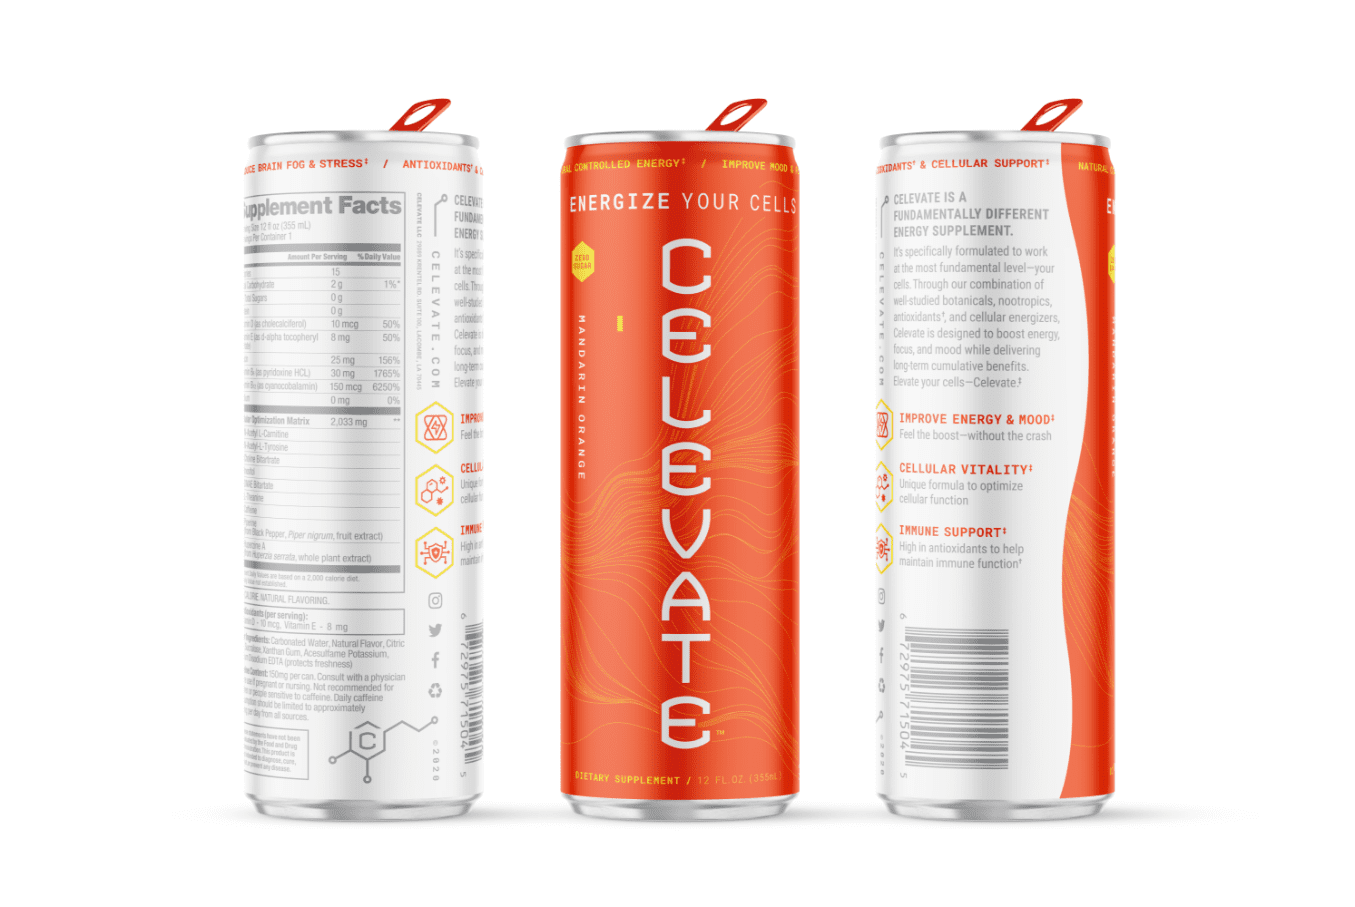 orange can render of mandarin orange flavor celevate